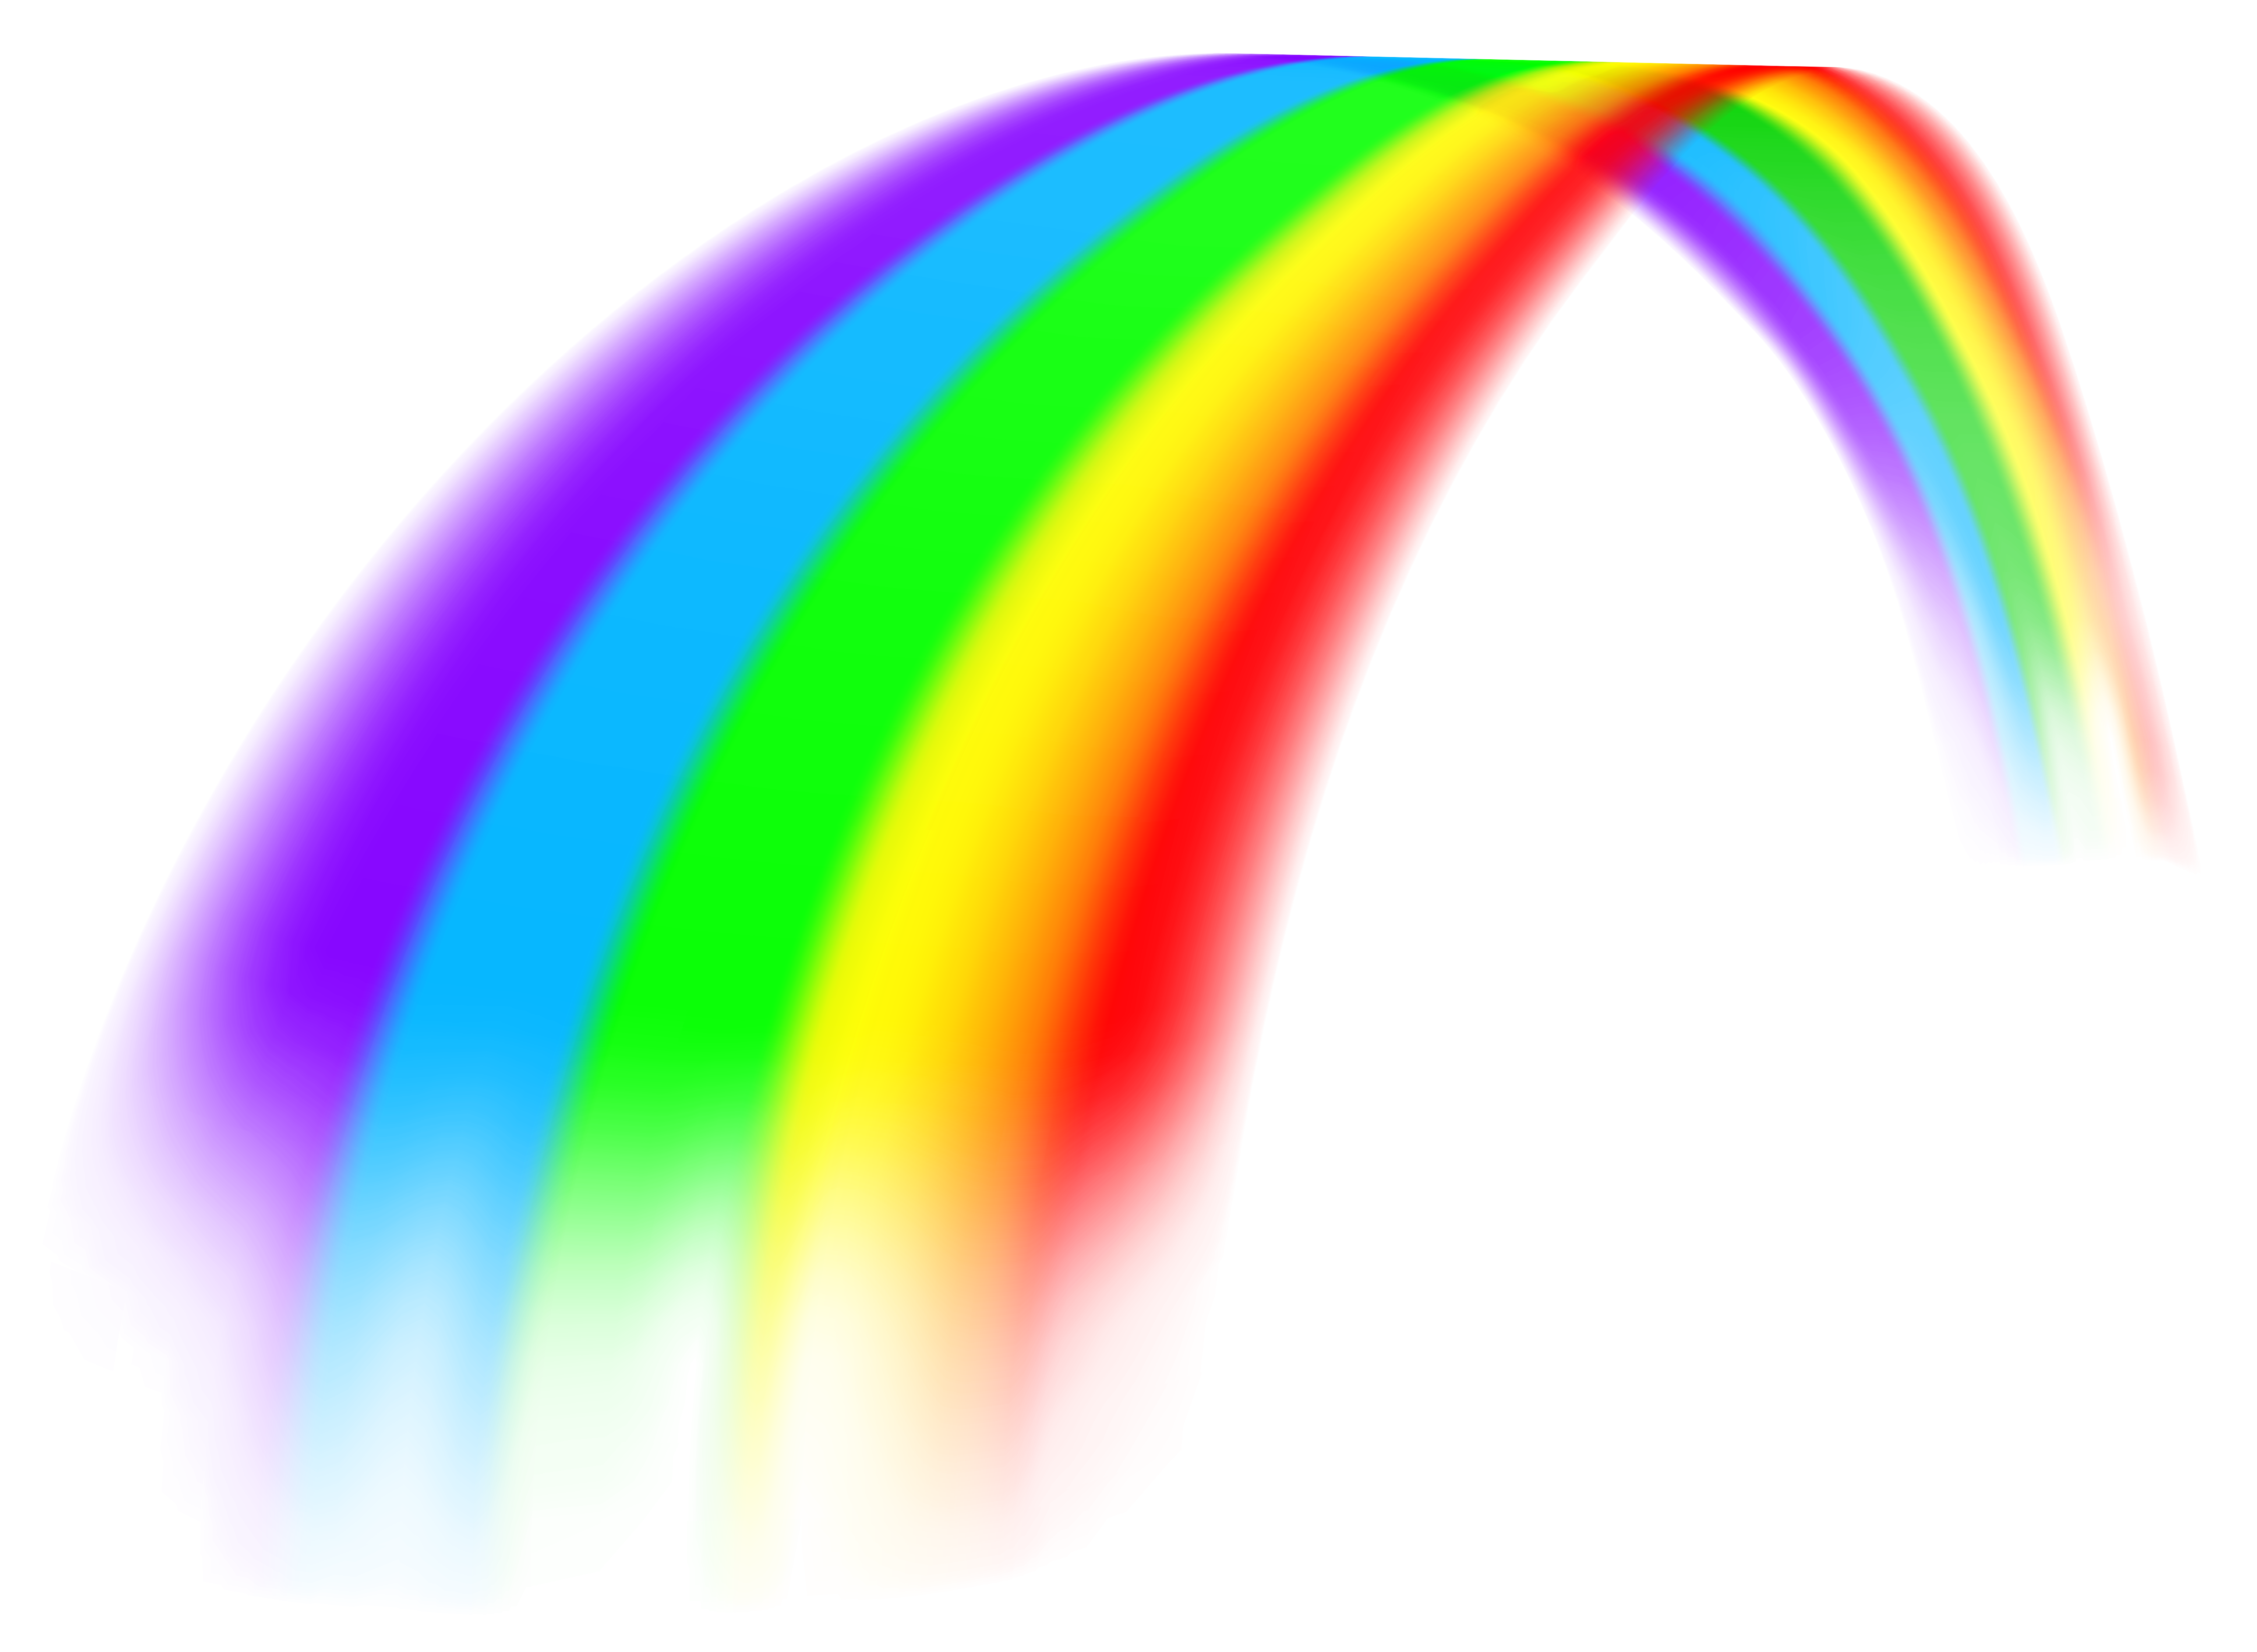 rainbow png image clipart best #12558